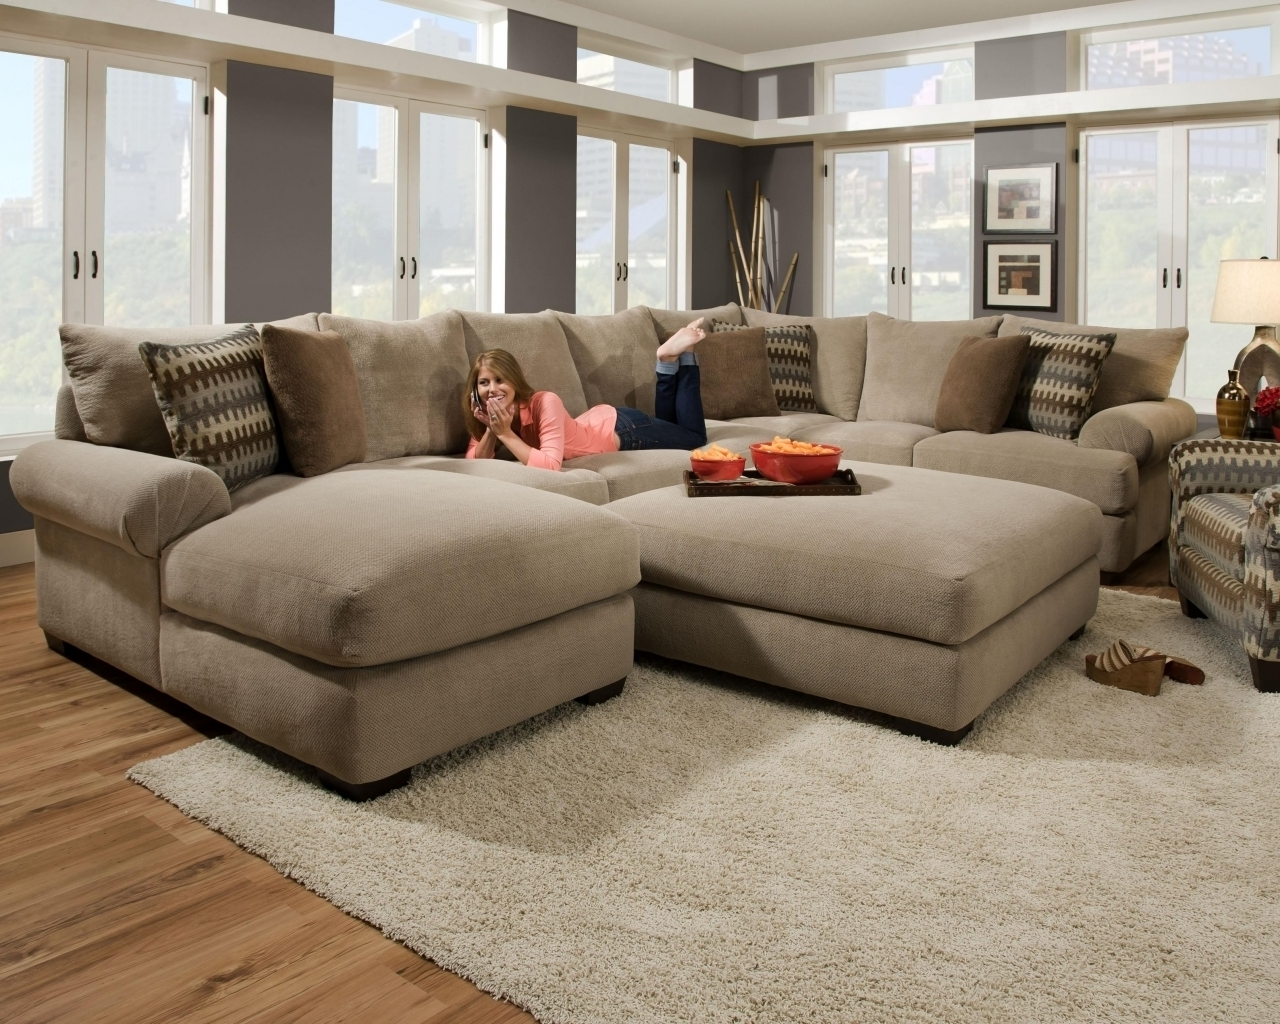 Amazing Sectional Sofa With Oversized Ottoman 59 For Your Best With Regard To Most Current Sectional Sofas With Oversized Ottoman (View 5 of 15)